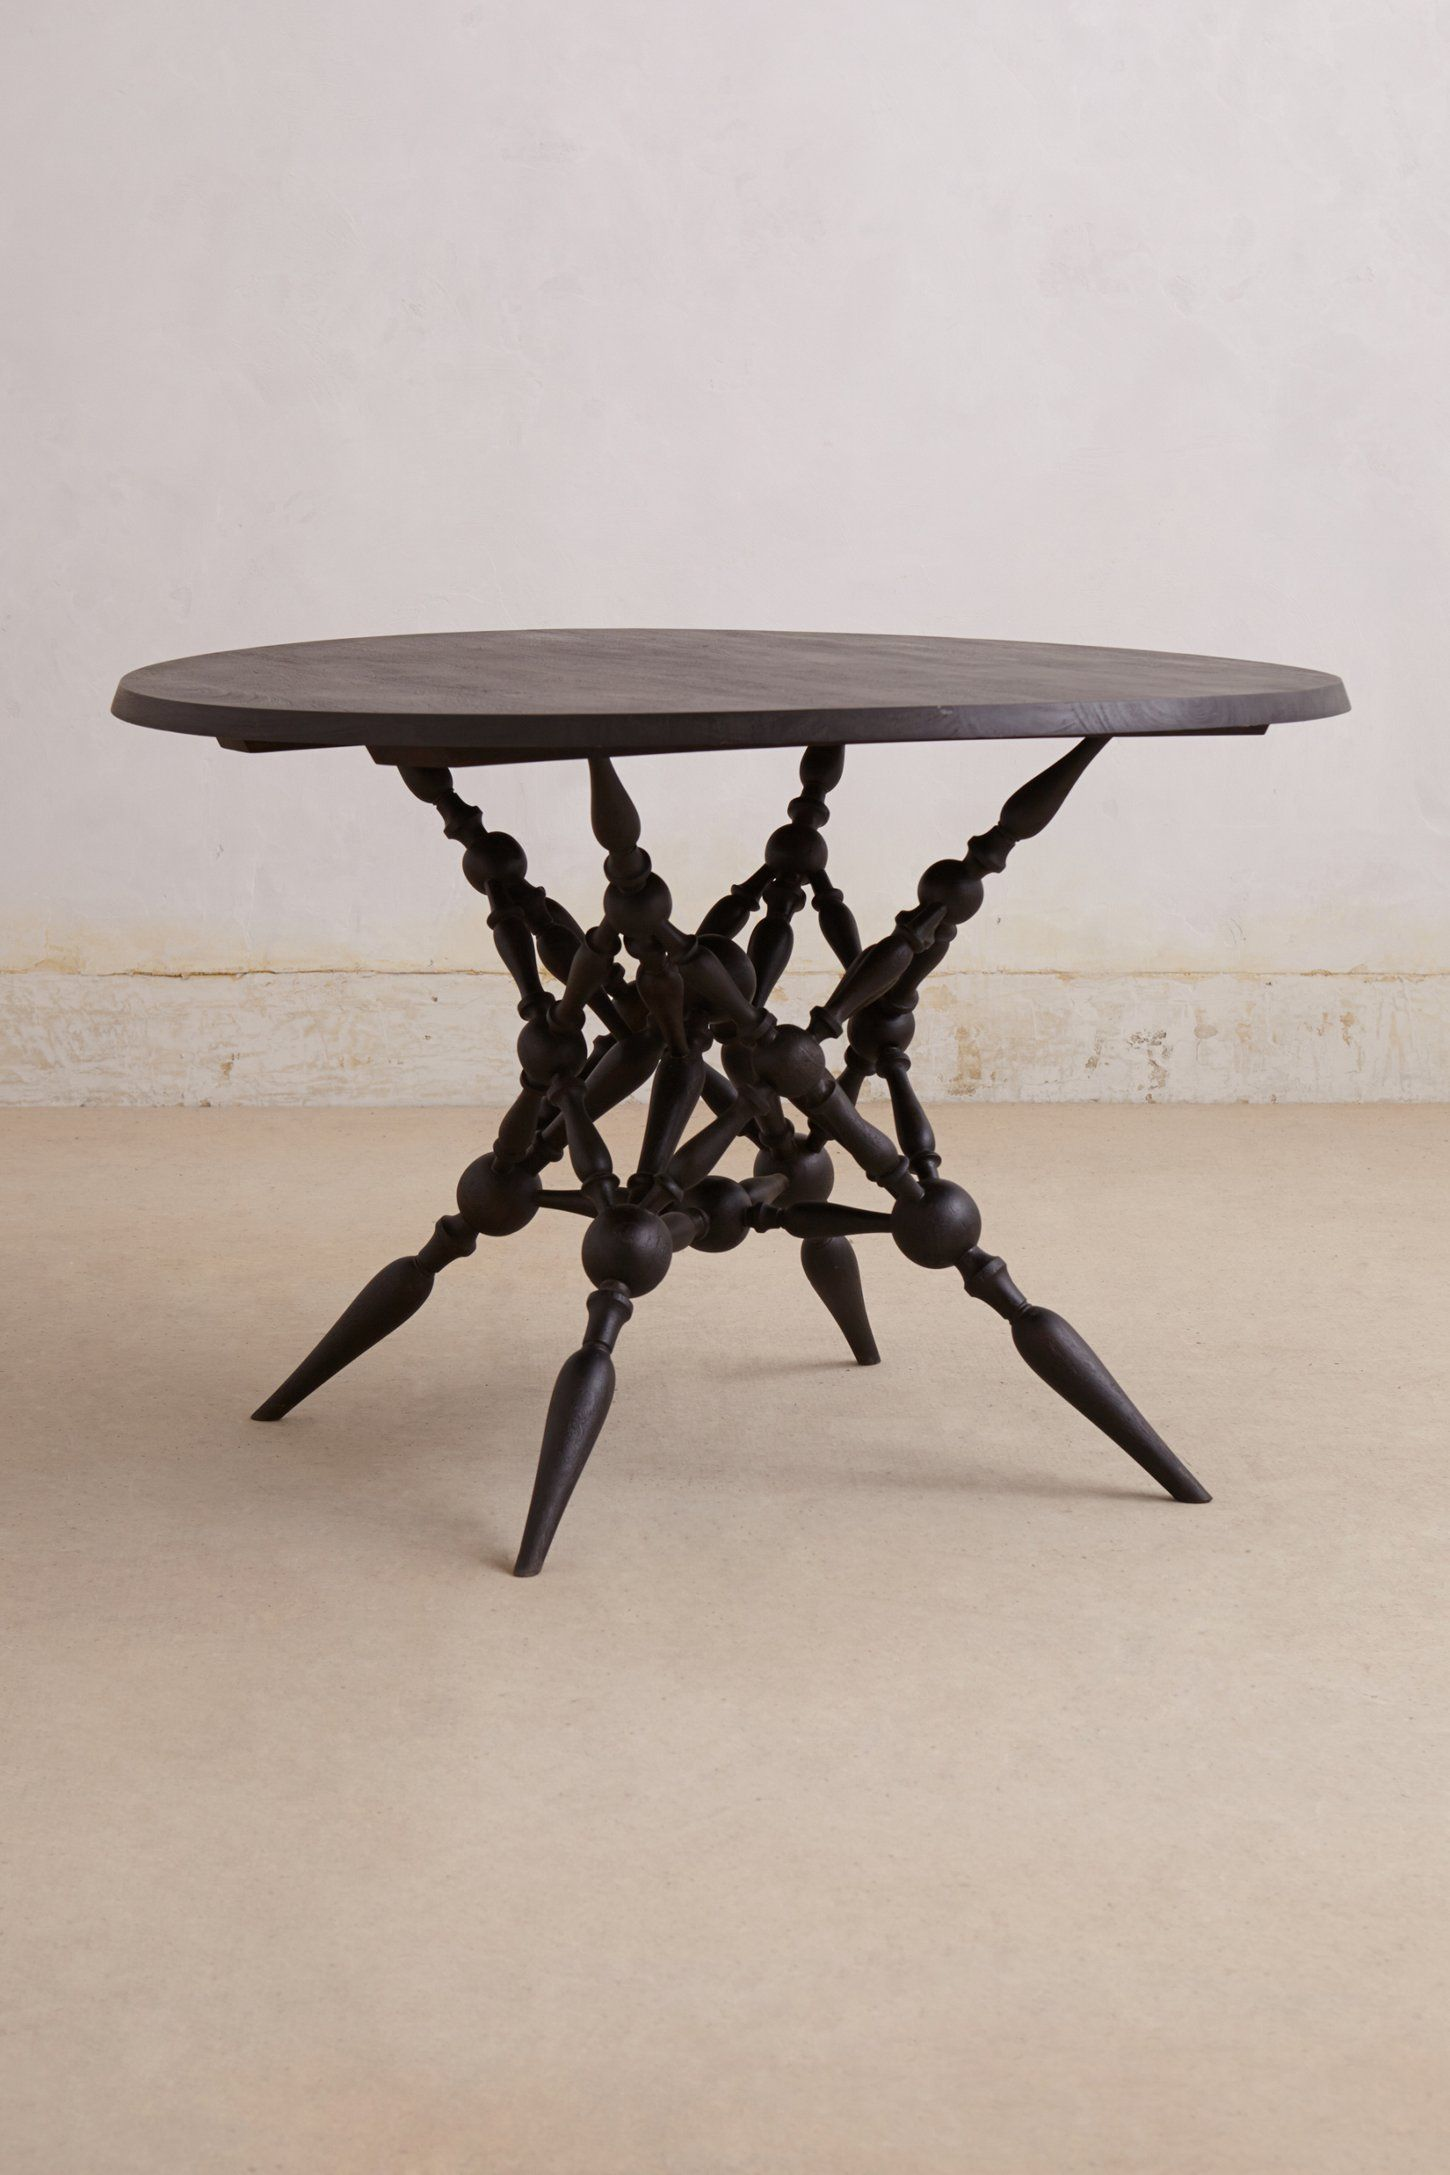 Notched Vines Dining Table - Anthropologie.com  c9ac5304e